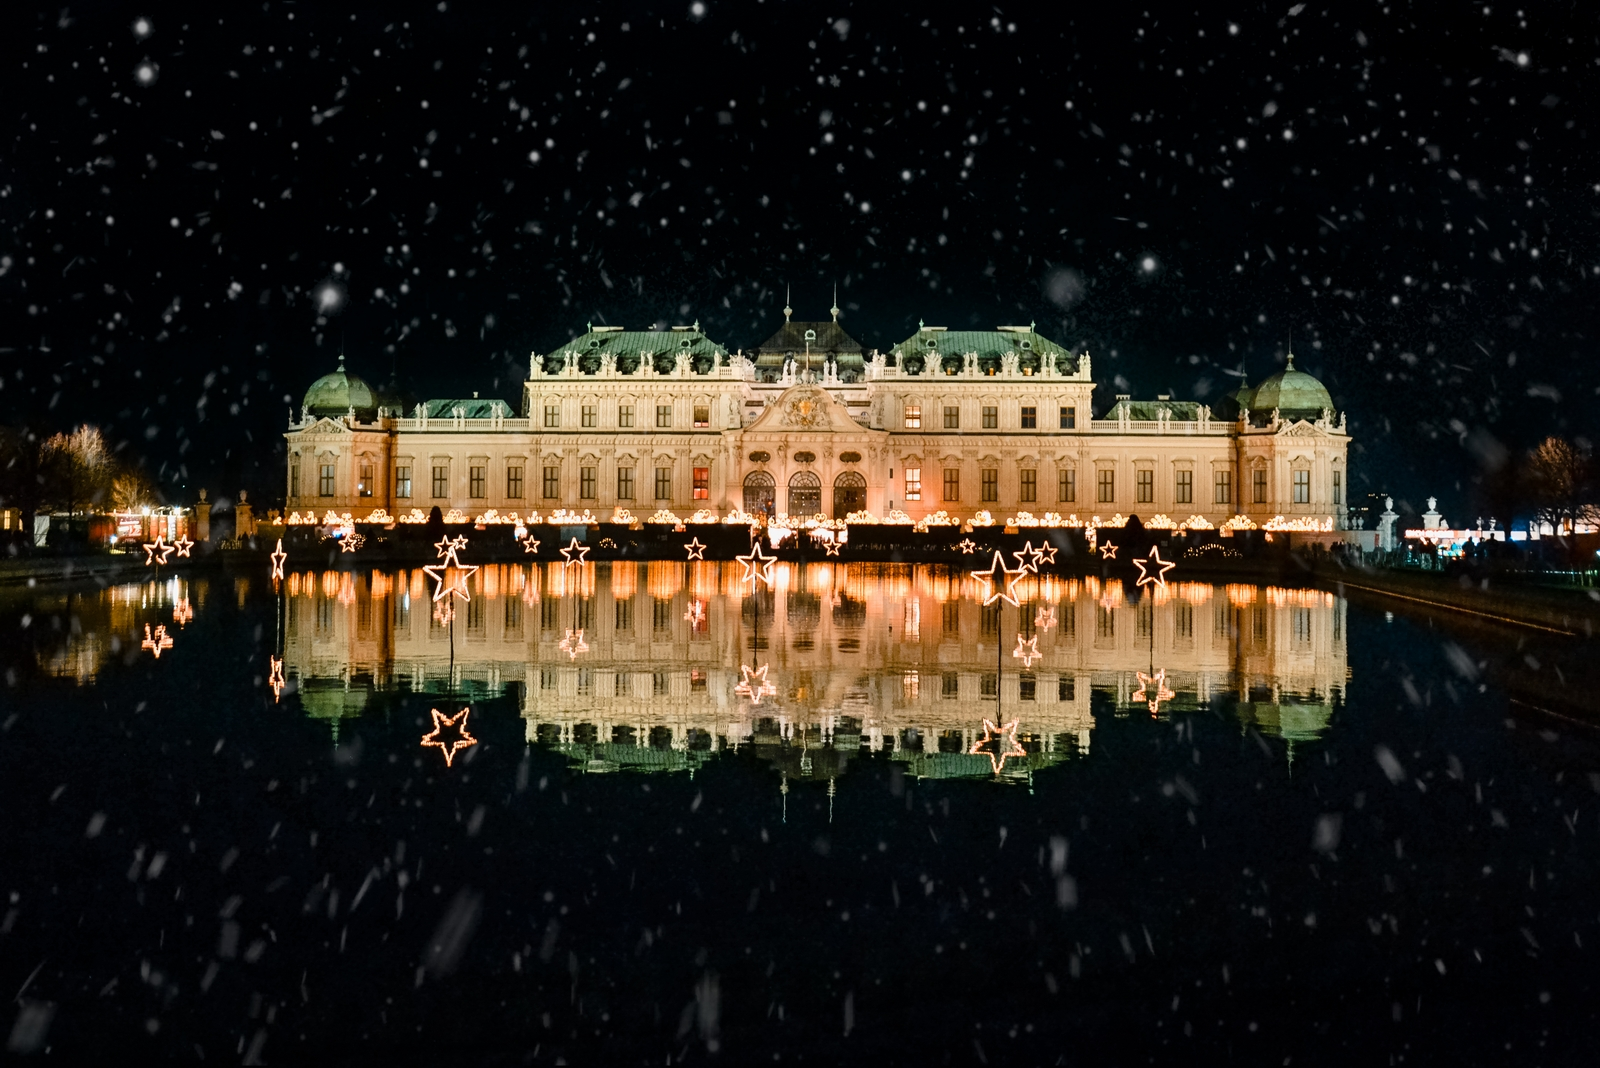 Christmas Time.15 Magical Photos Of Vienna At Christmas Time Epepa Travel